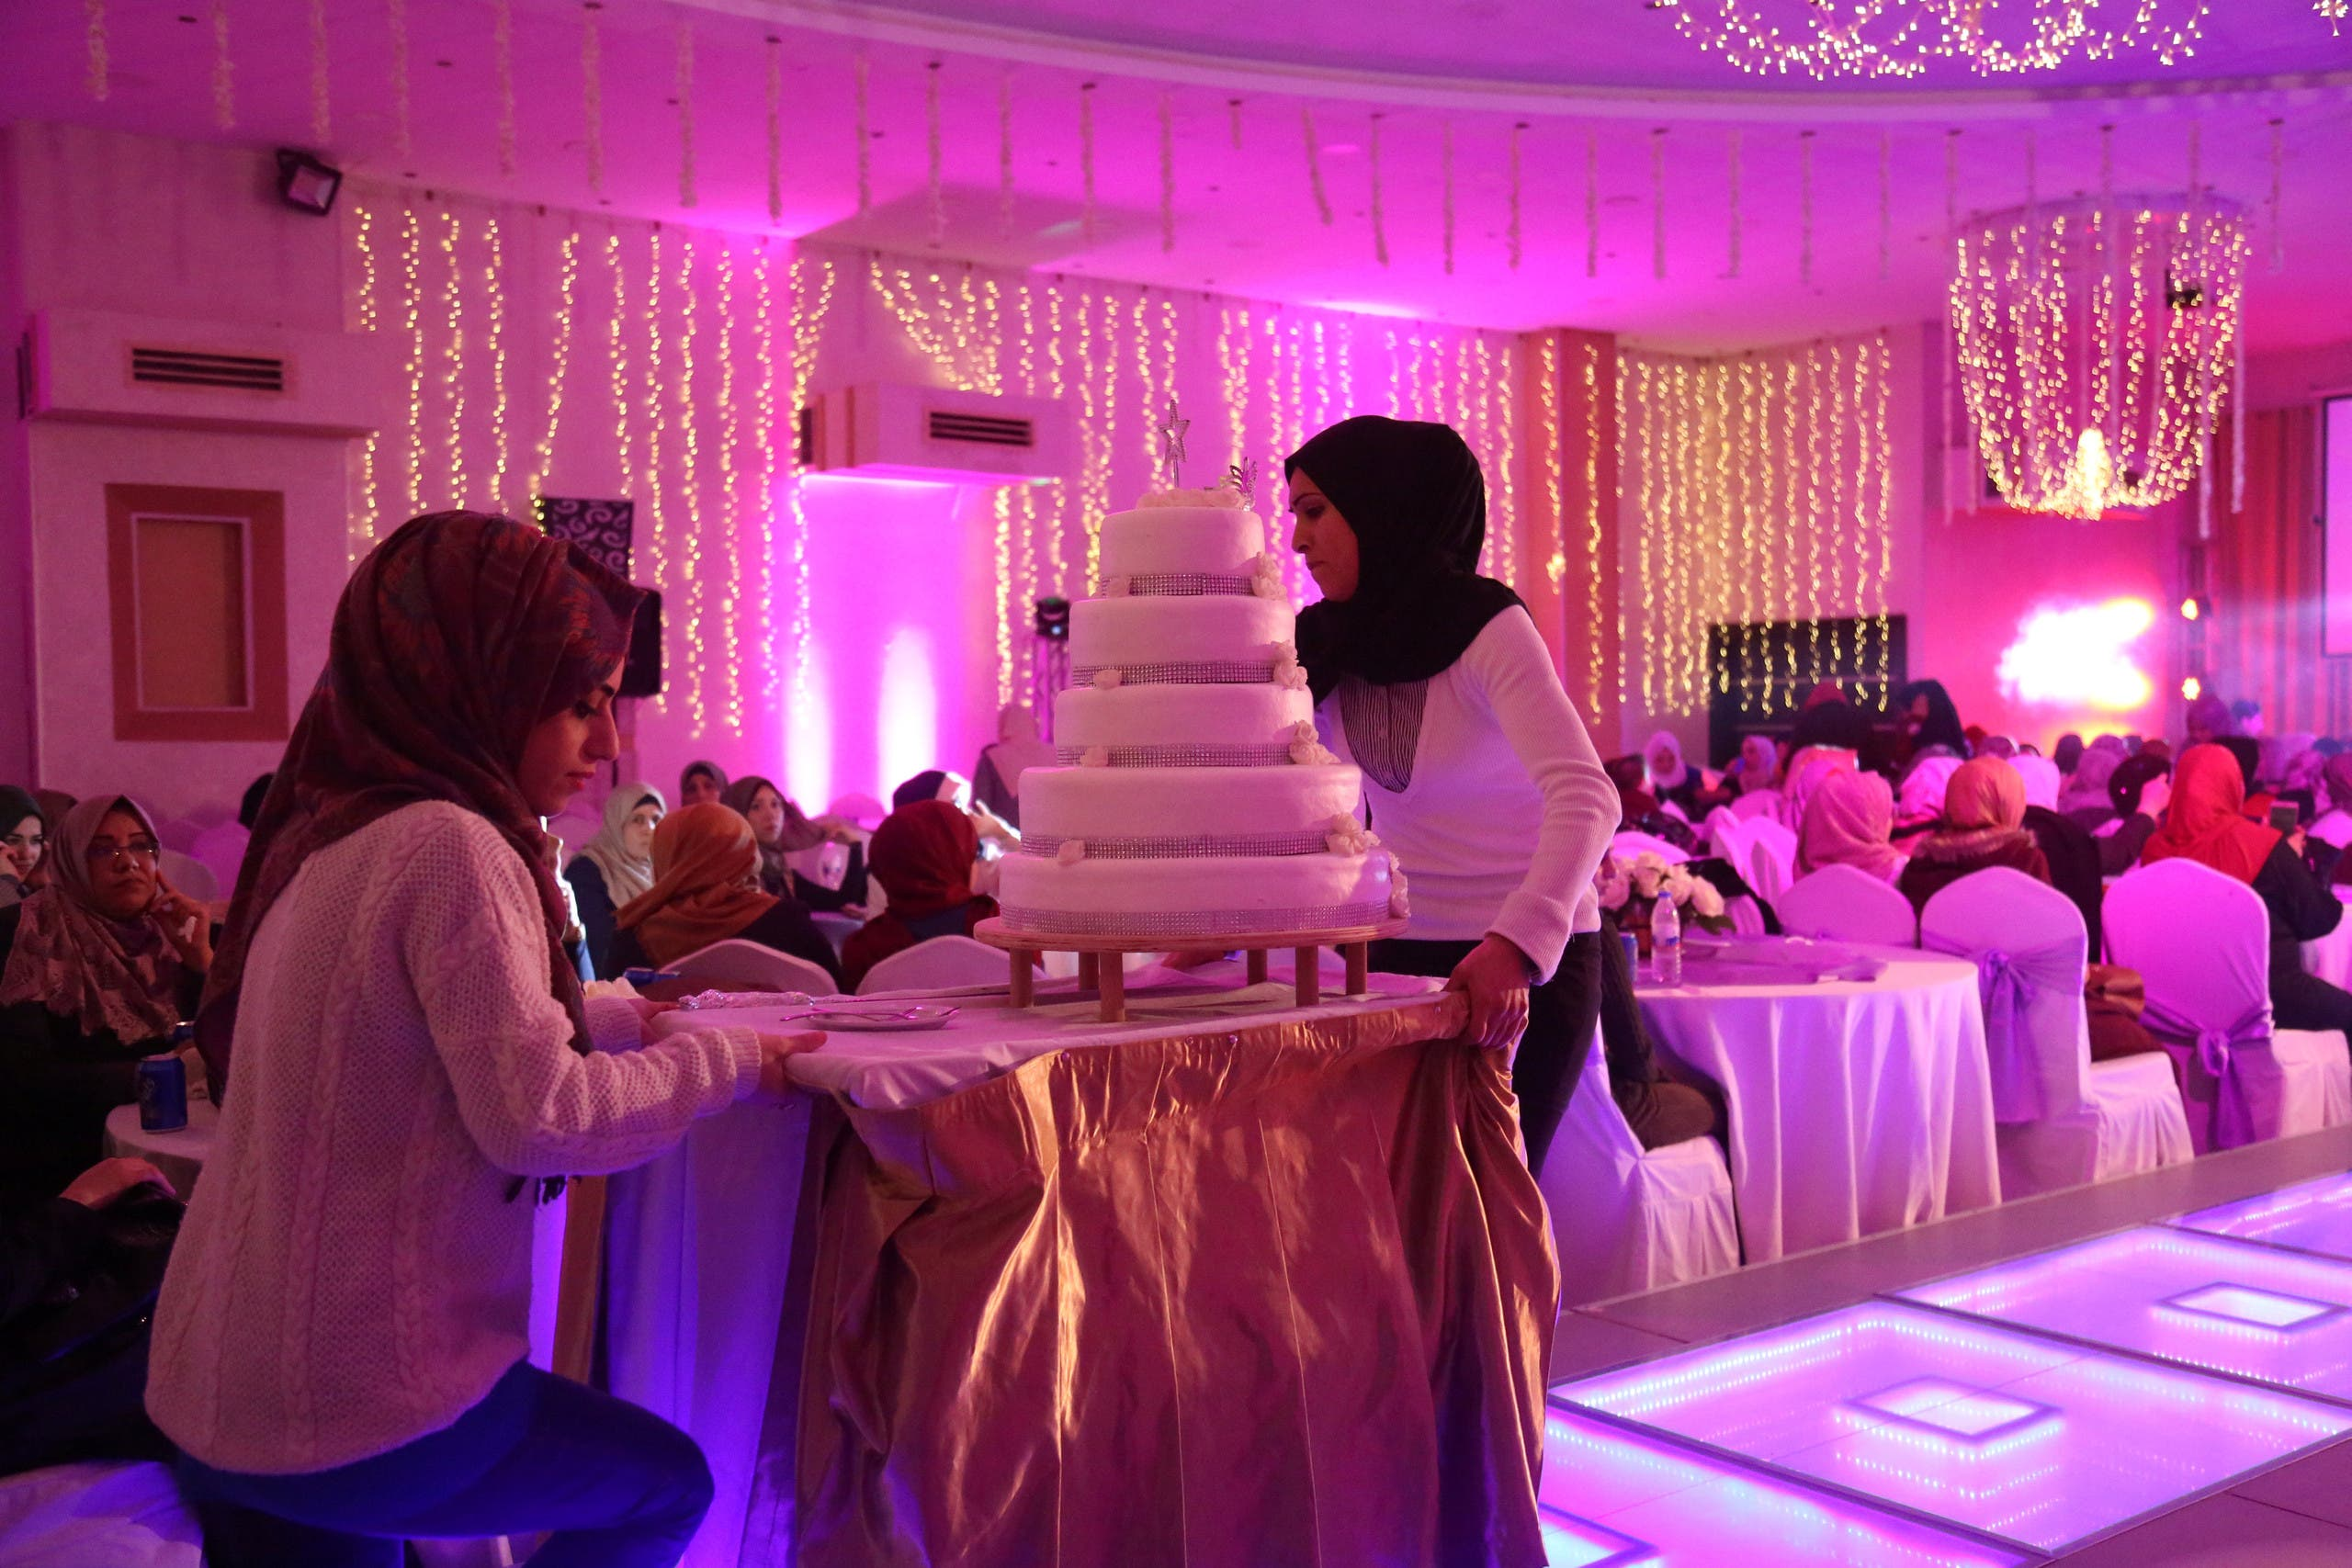 Palestinian Sahar Yaghi (L), 28, prepares to serve cake during a wedding party at a hotel in Gaza City (reuters)